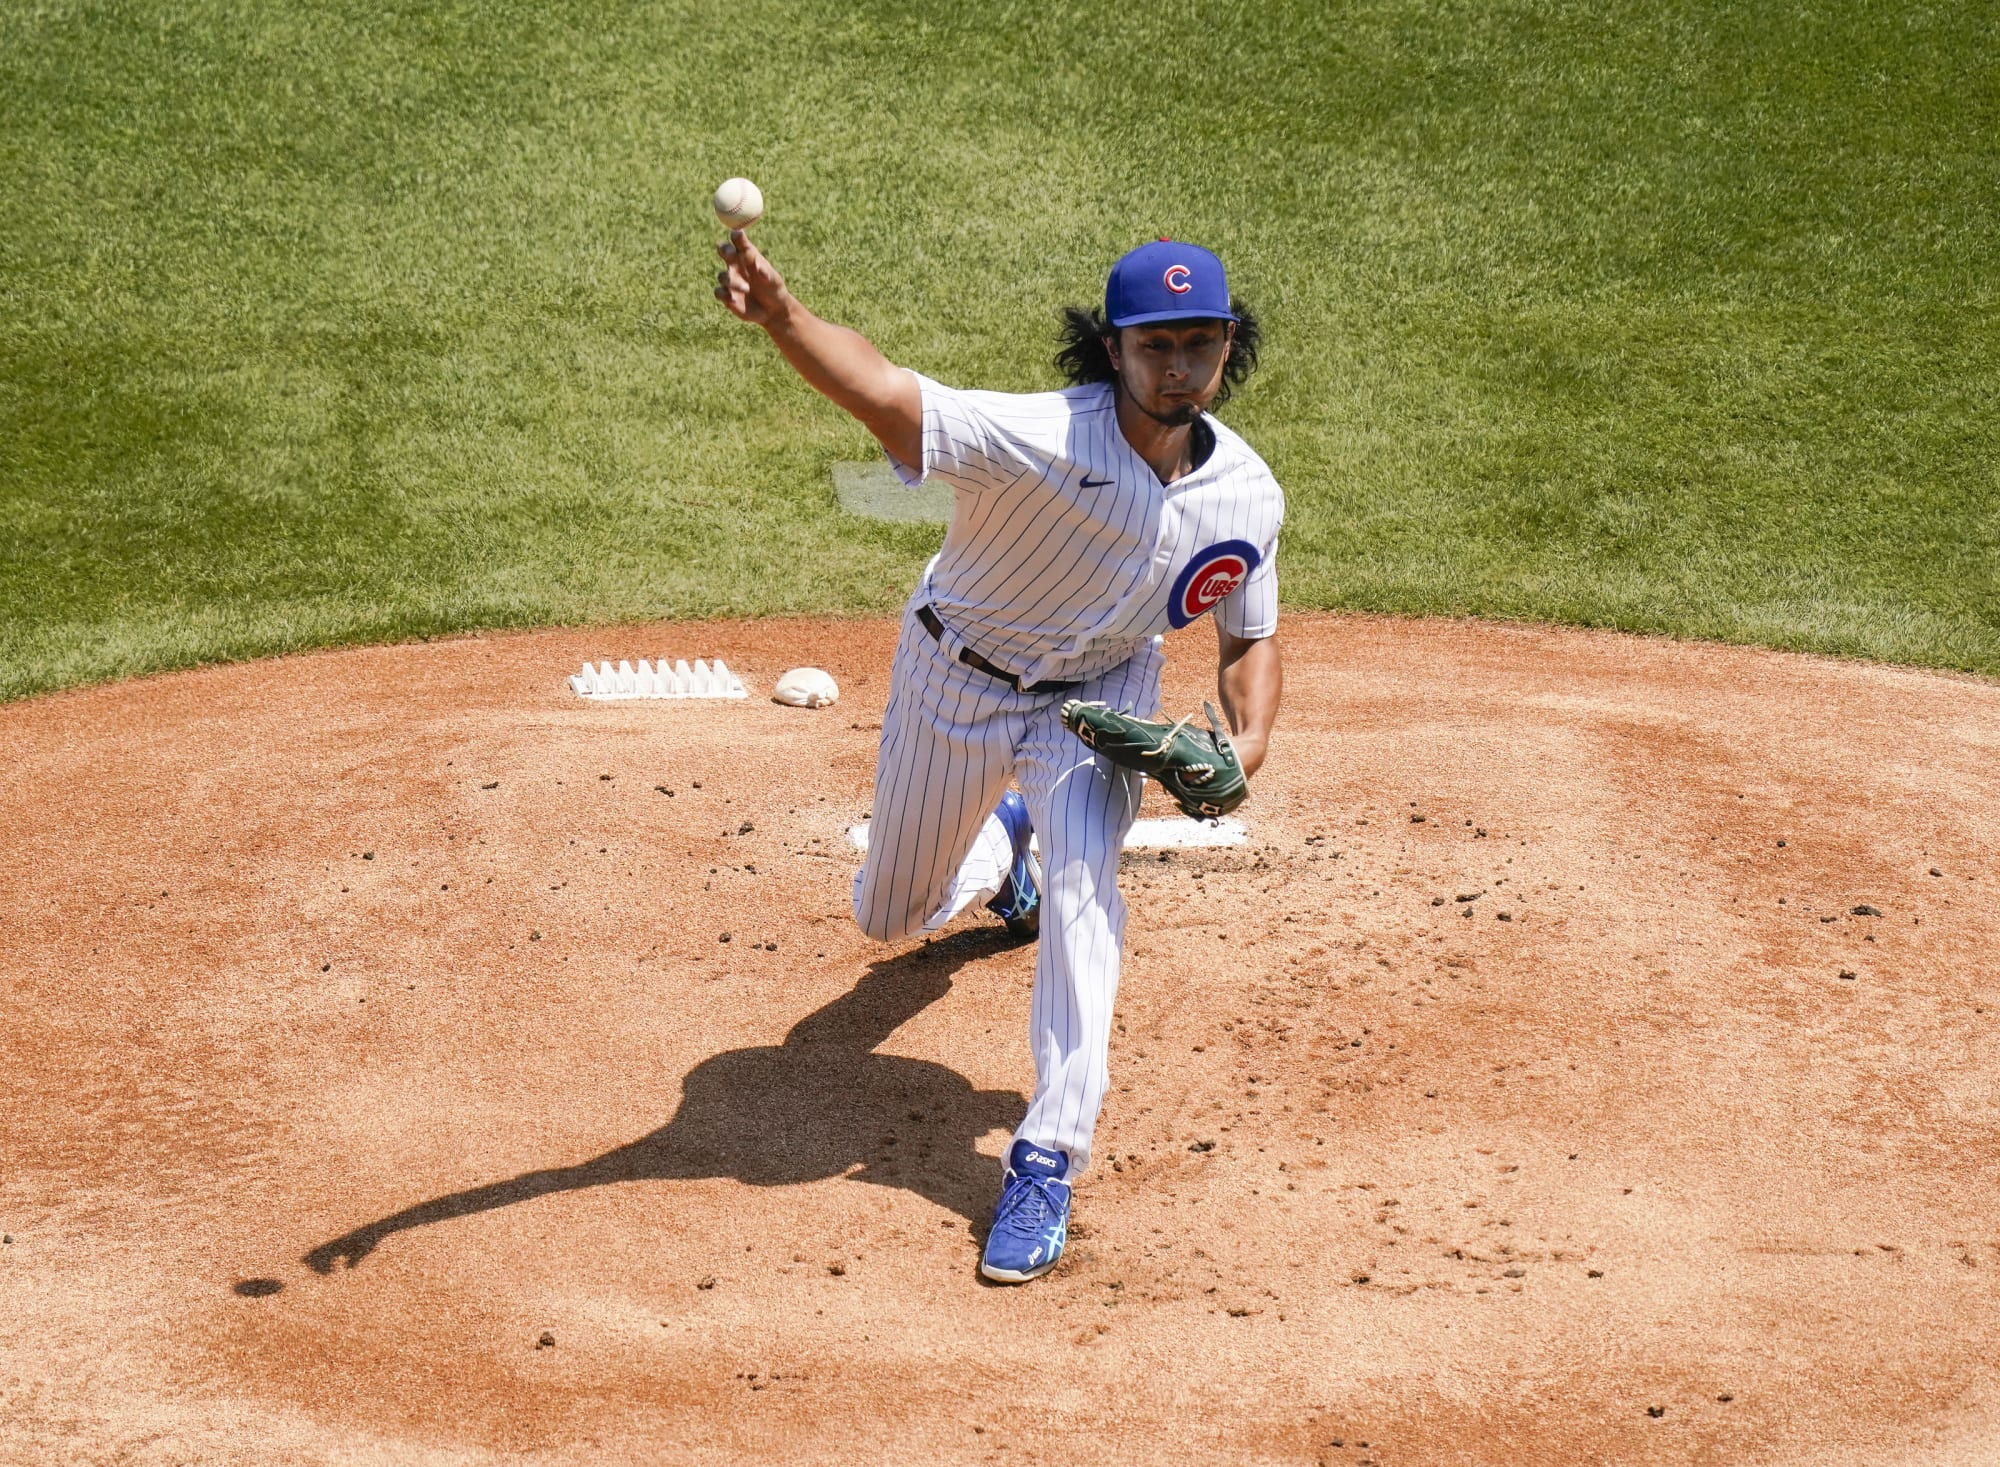 Chicago Cubs: Yu Darvish only part of problem in loss to Brewers